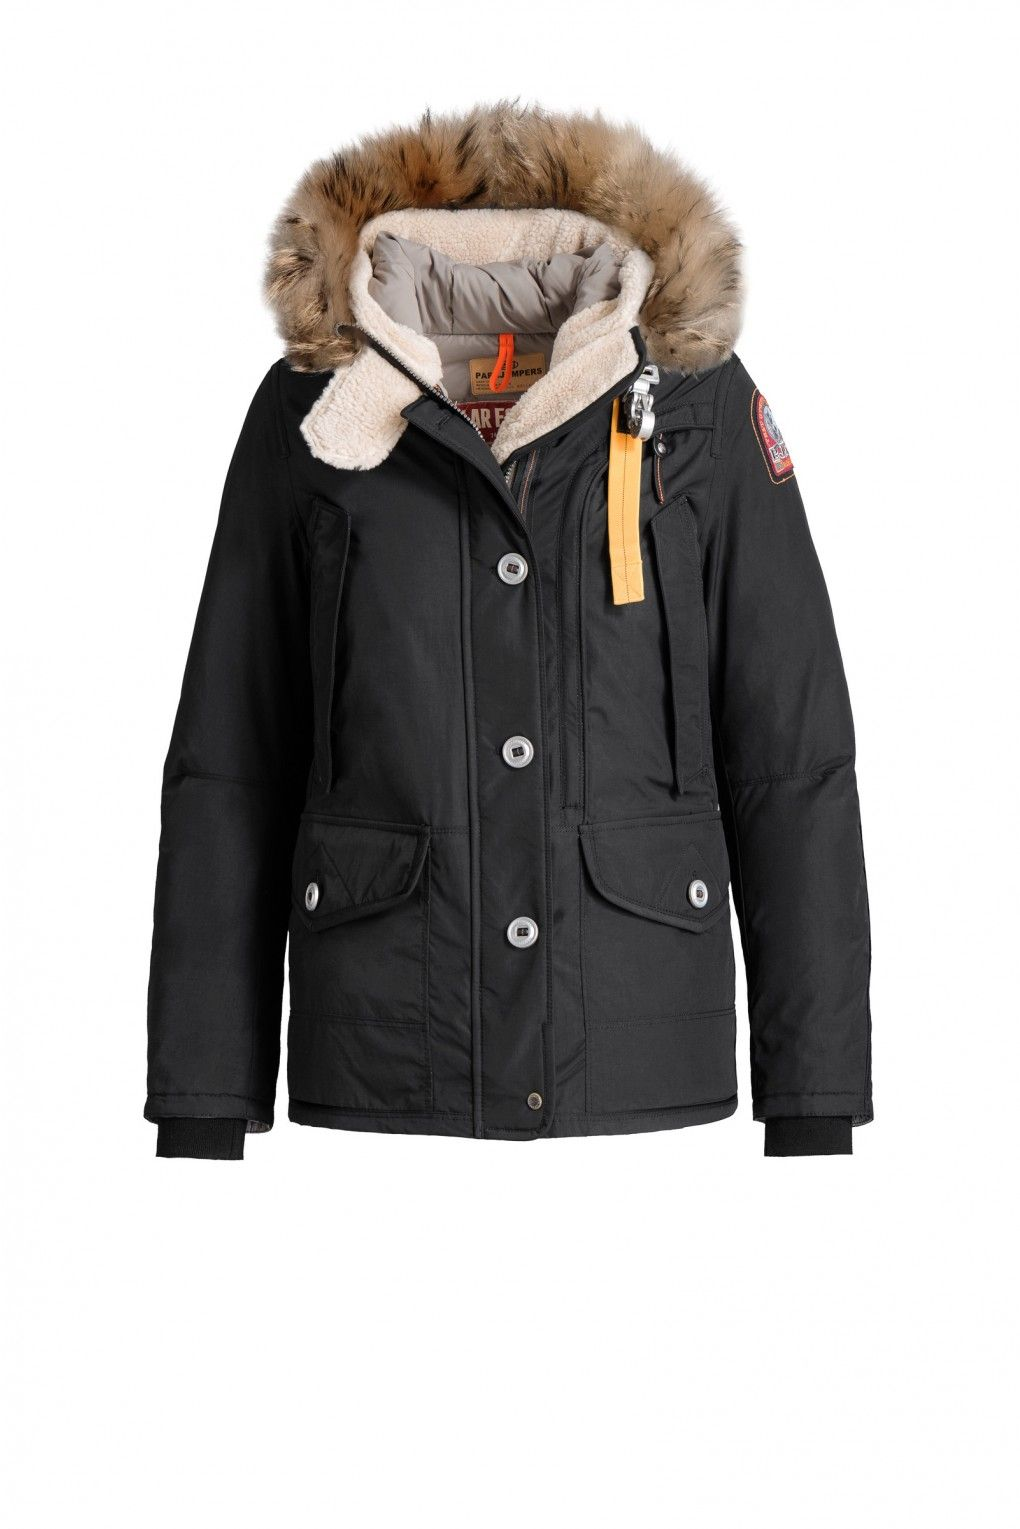 parajumpers musher sale